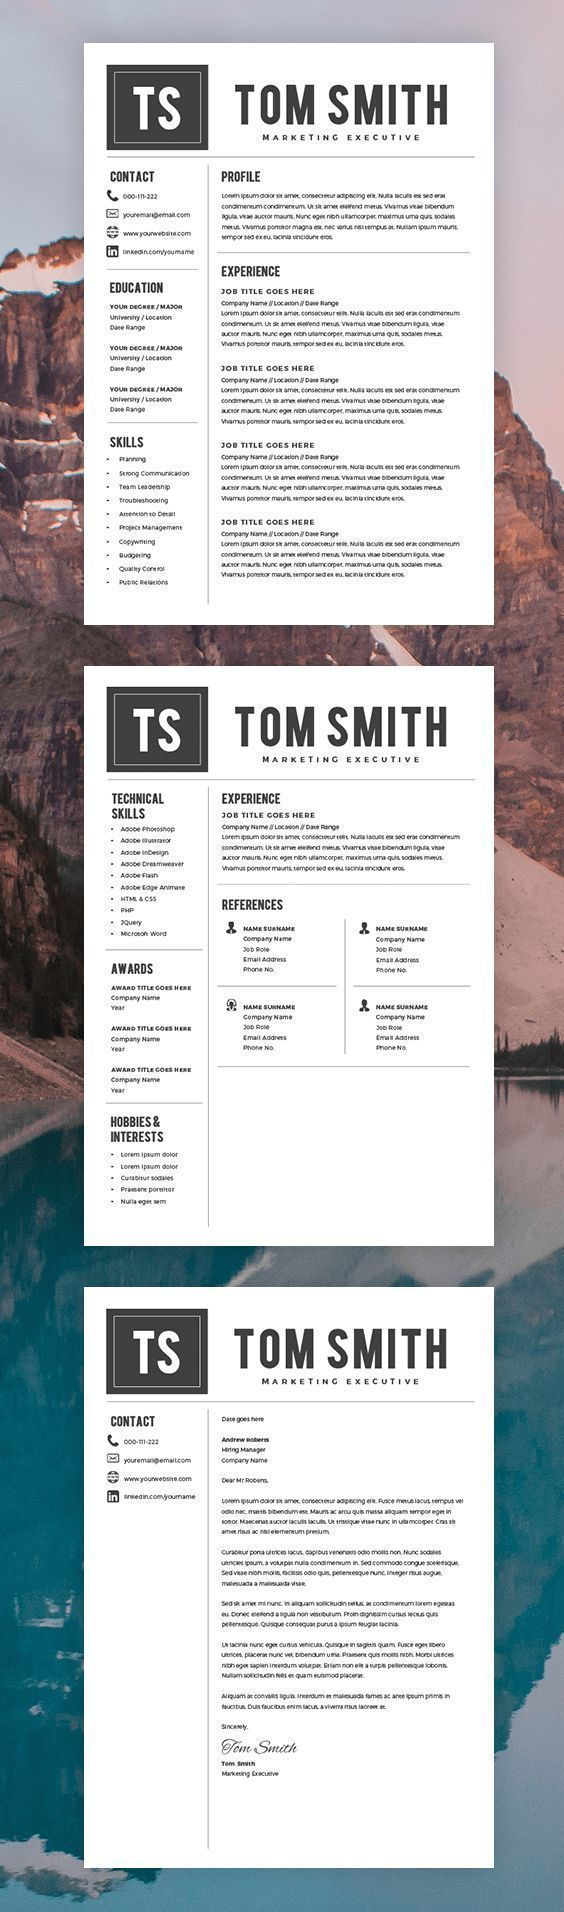 Functional Resume Template Microsoft%0A Modern Resume Template  Free Cover Letter  CV Template  MS Word on Mac